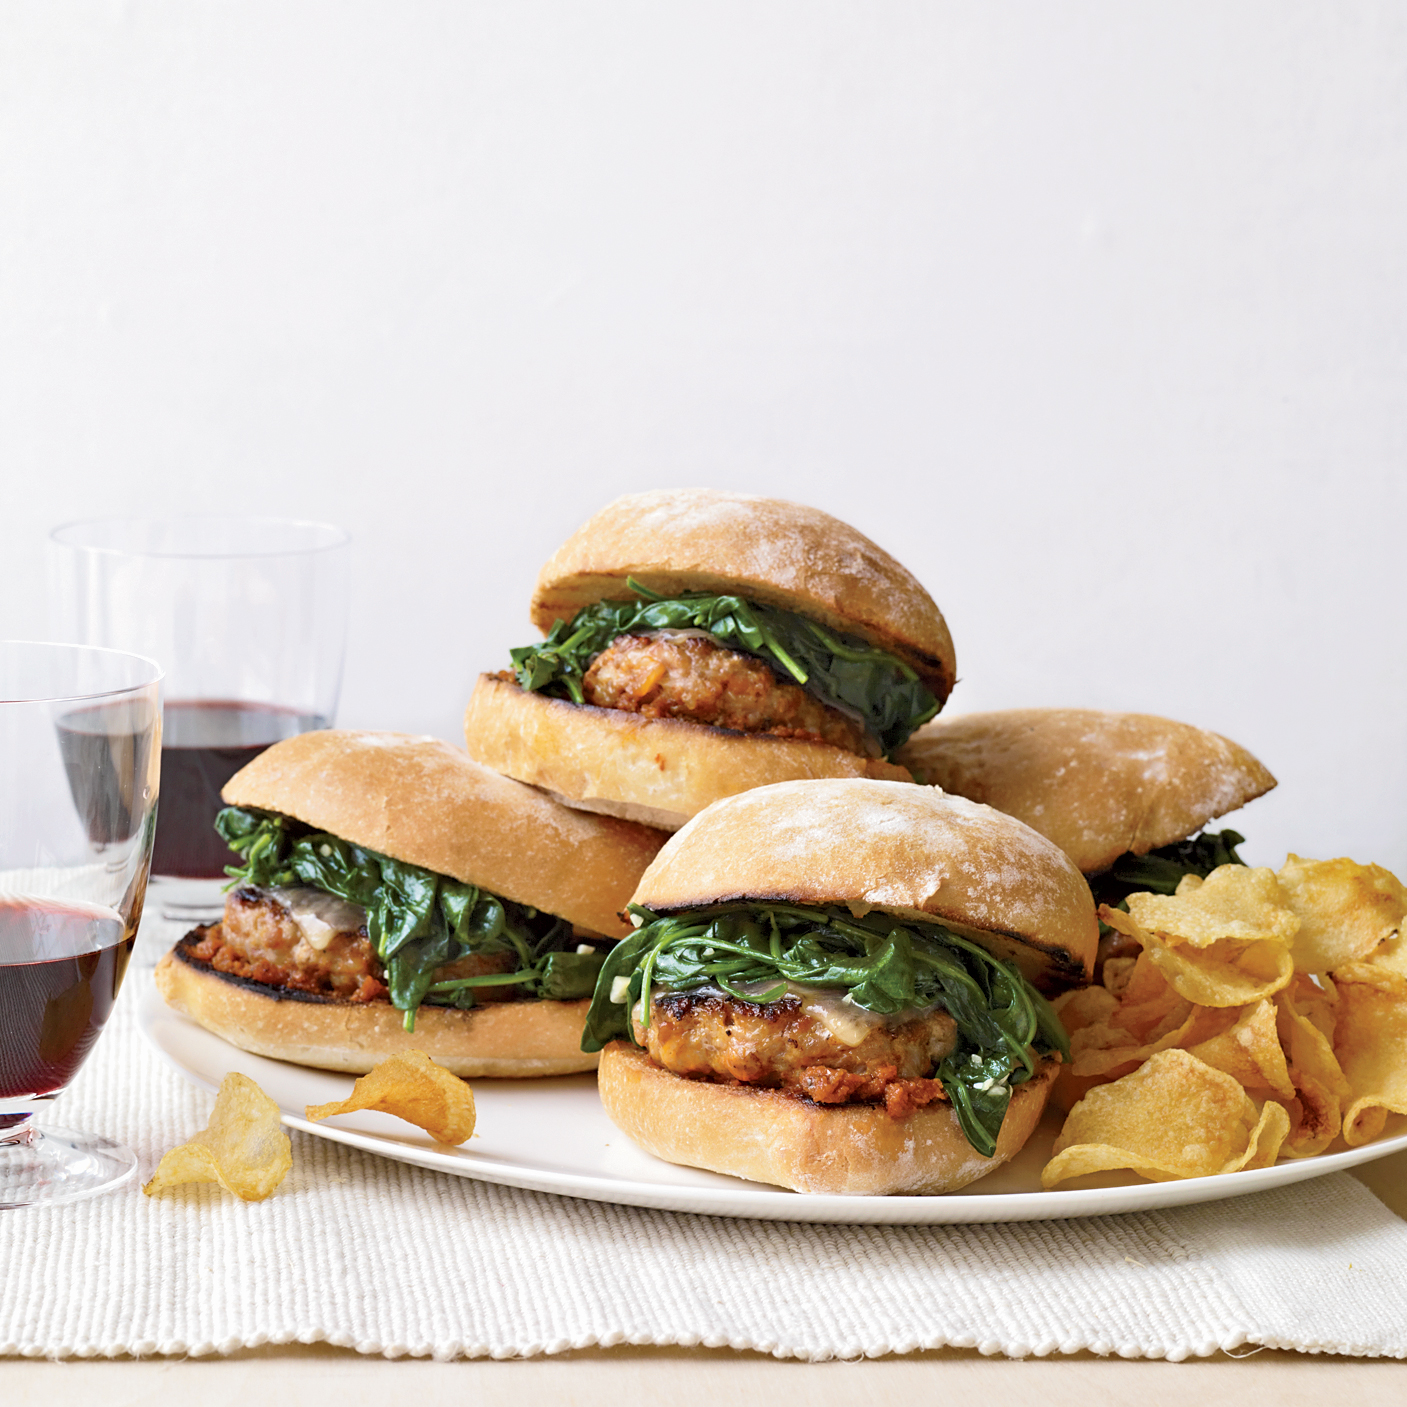 Italian-Sausage Burgers with Garlicky Spinach